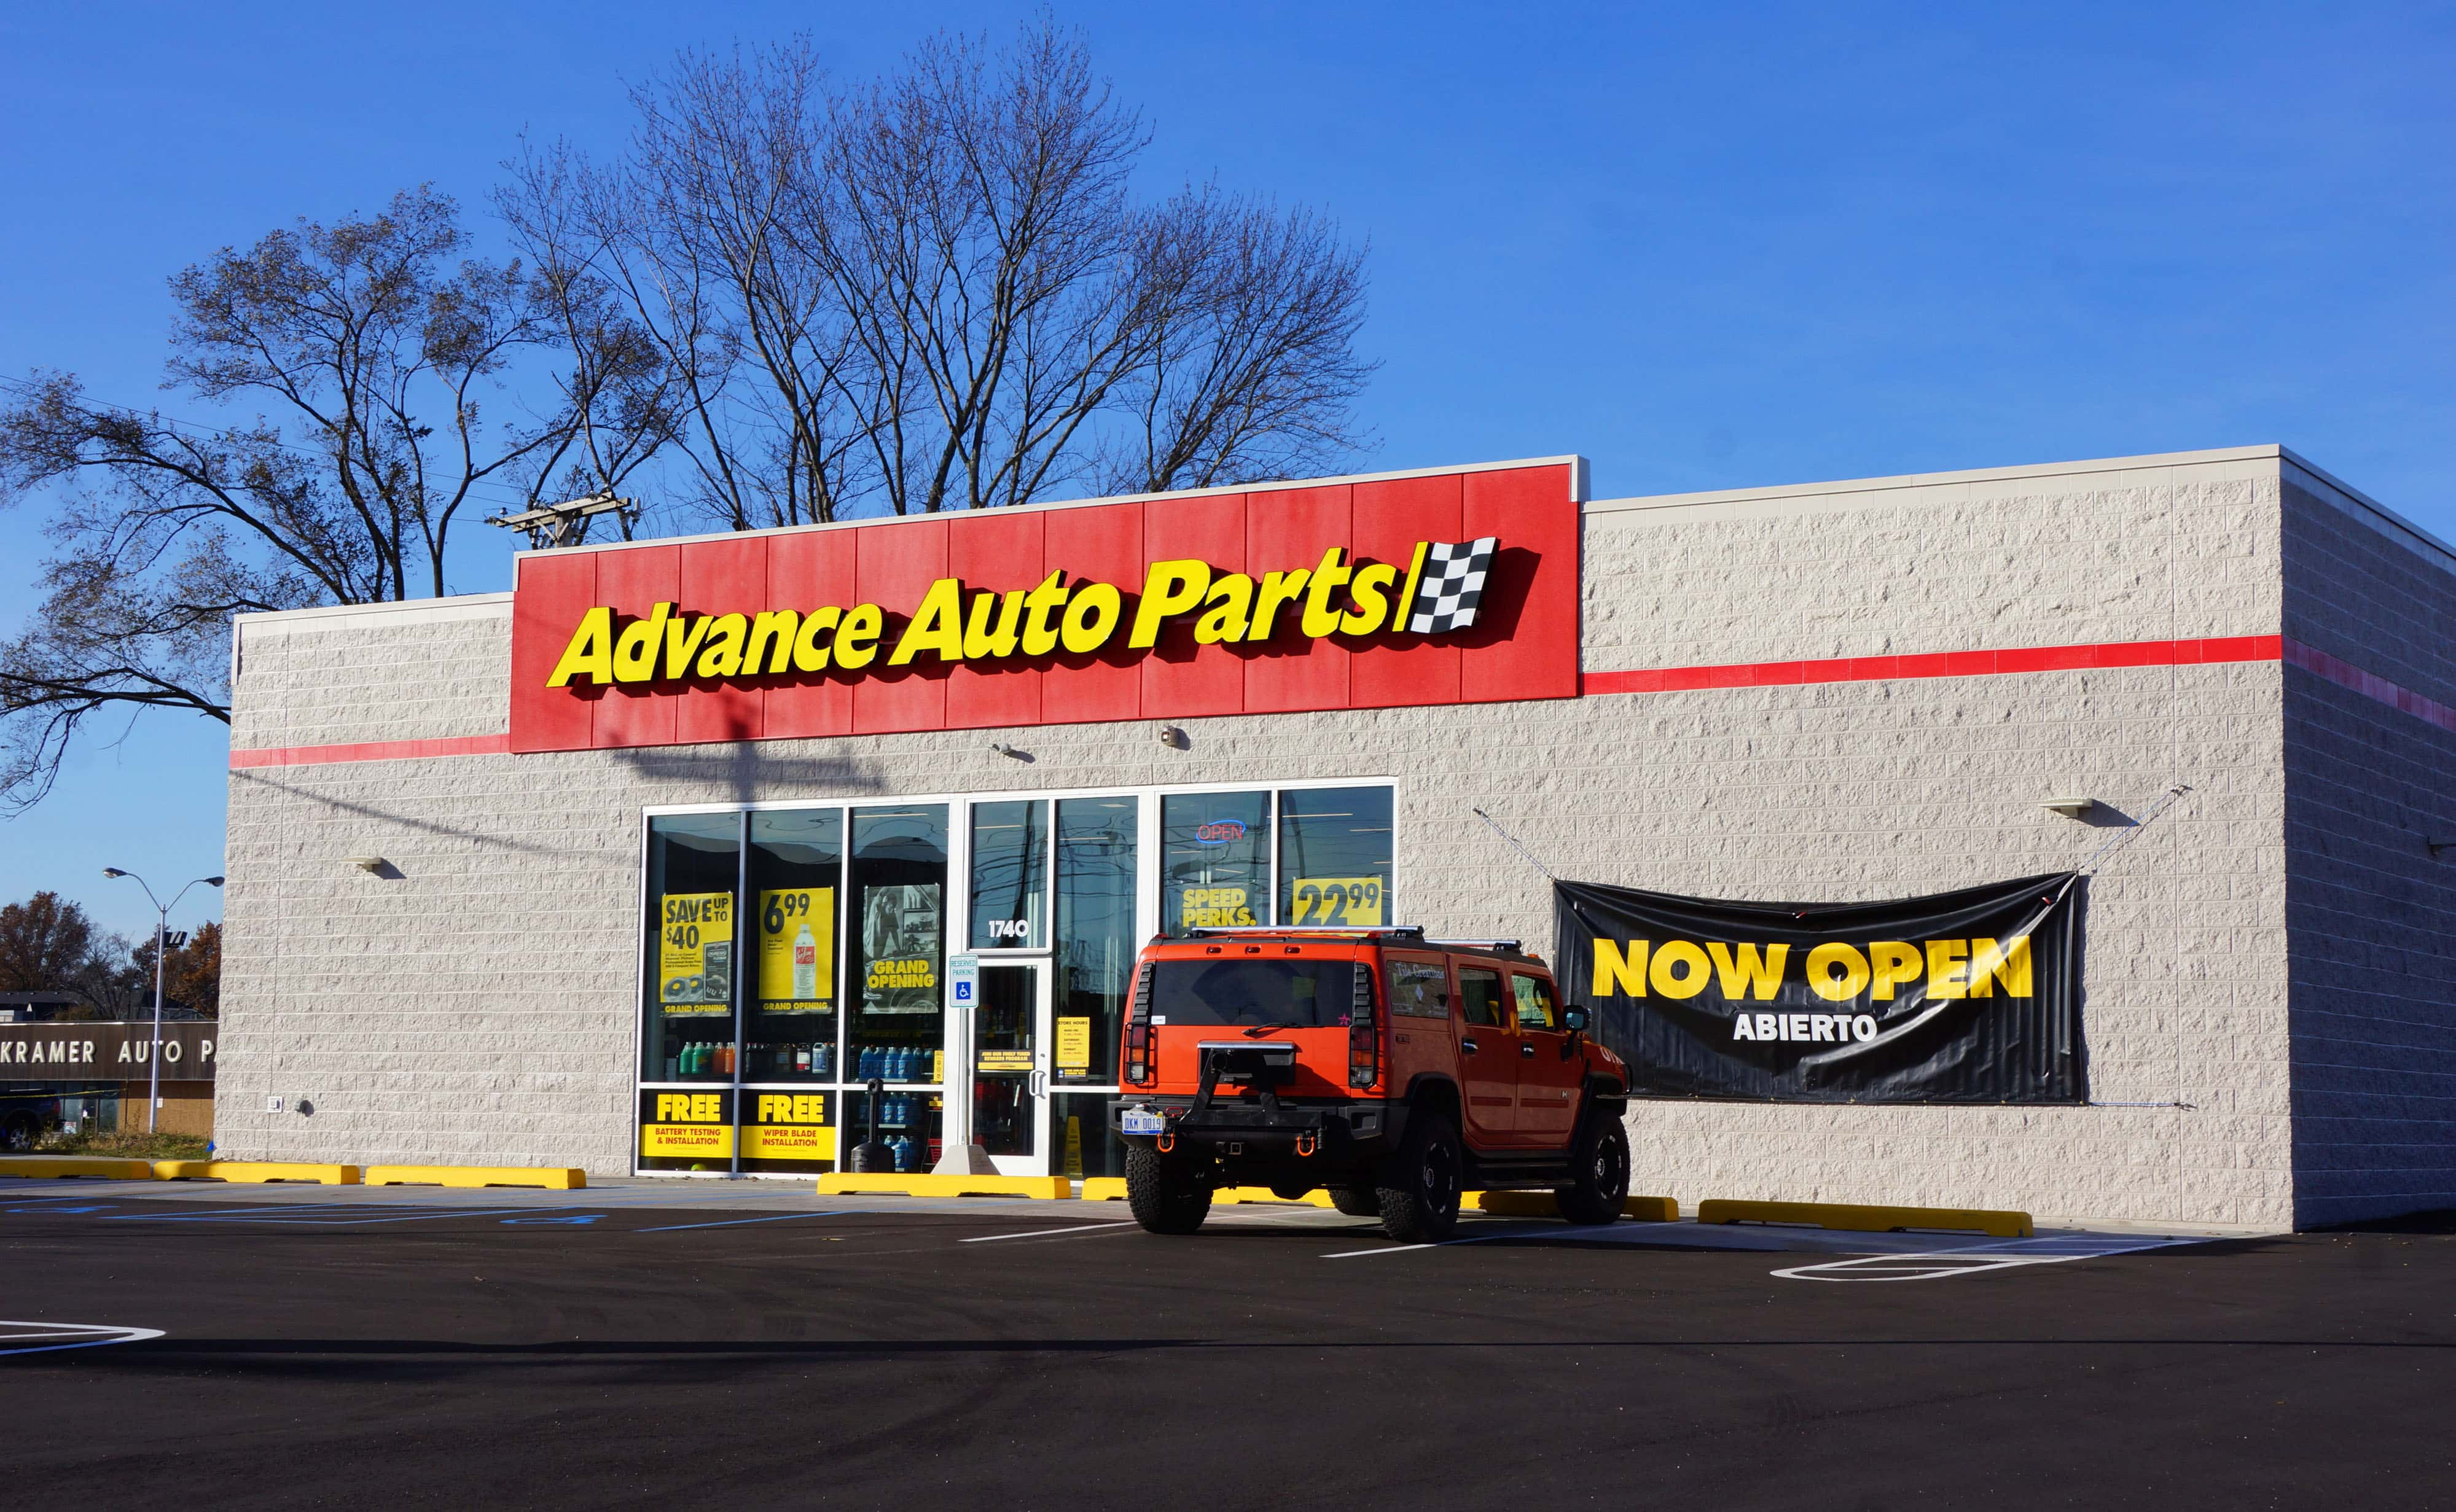 Advance Auto Parts Brand Completes Its Return To Swm Marketplace